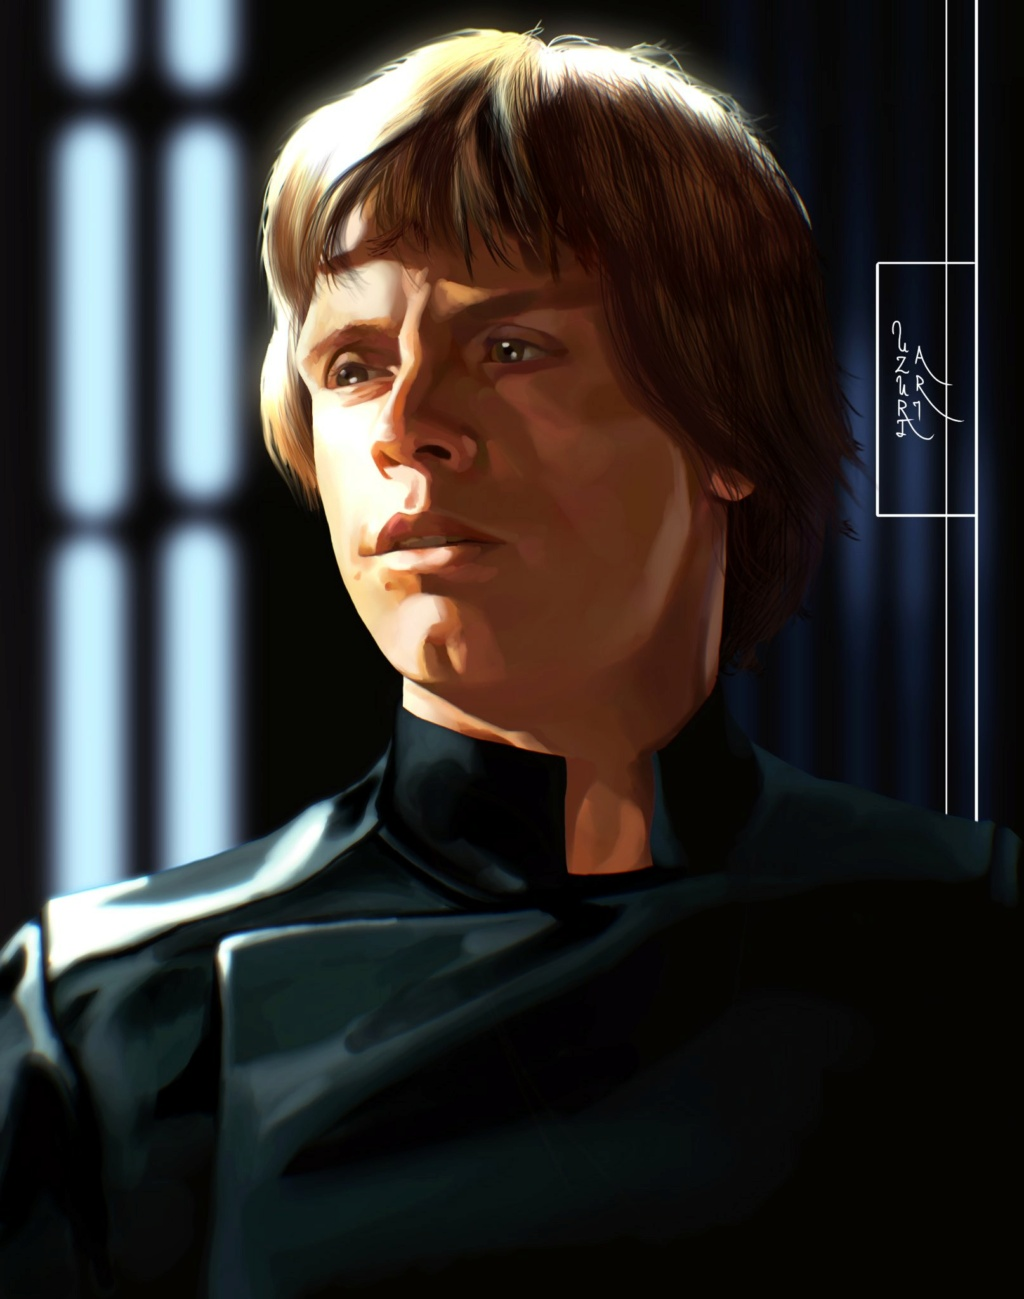 Digital Art par UZURI ART - Star Wars Uzuri_22